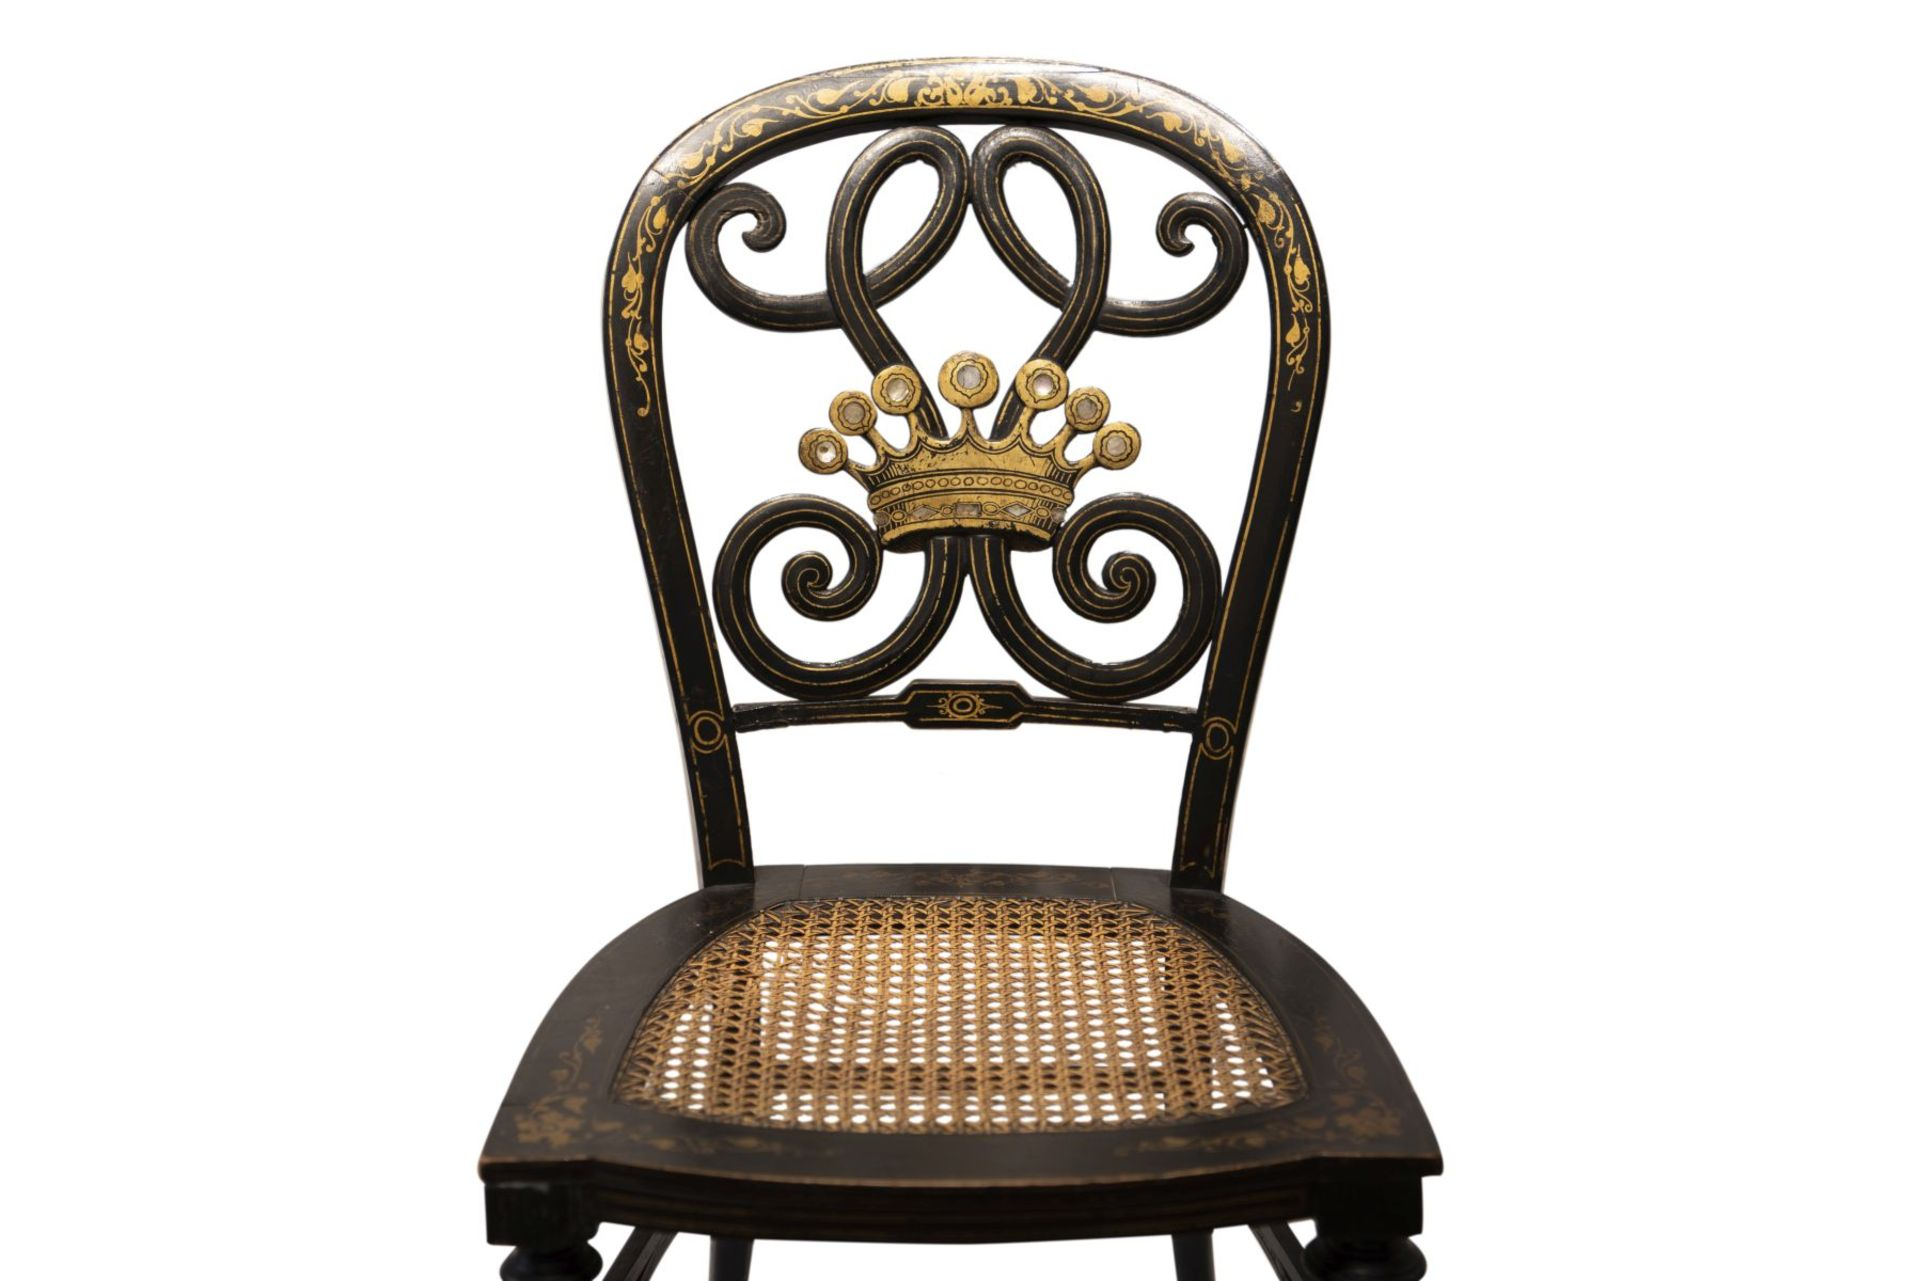 Decorative chair, French Chinoiserie - Image 4 of 7